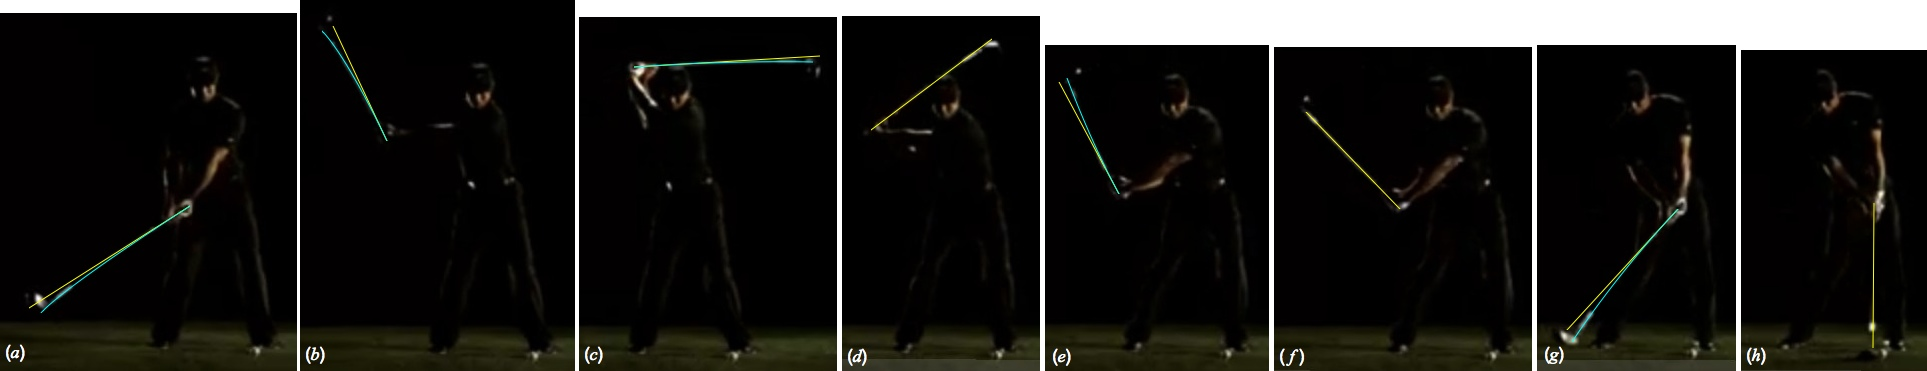 Do flexible handles affect the performance of a baseball or